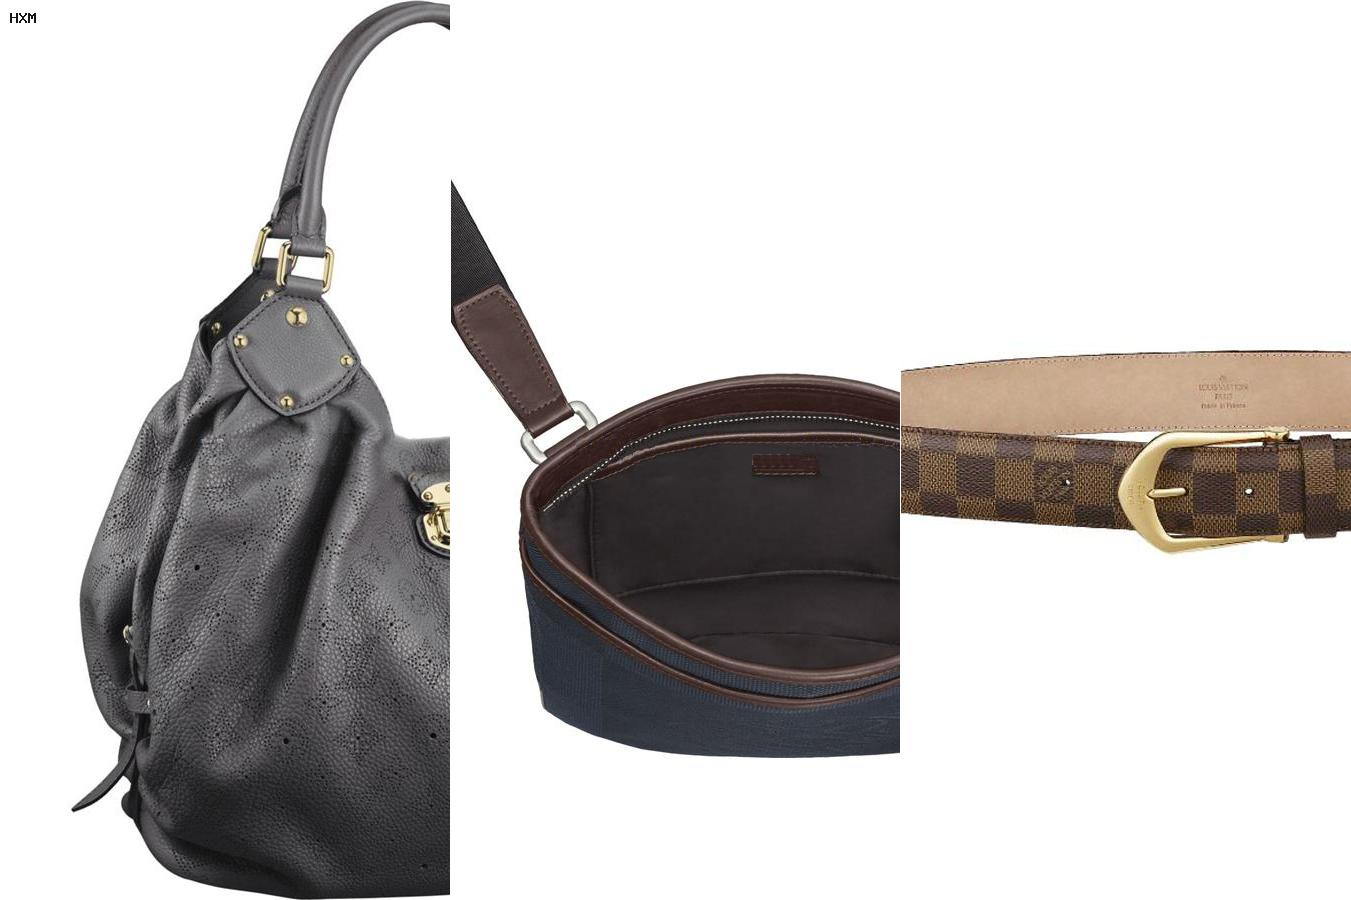 lunette louis vuitton evidence reference